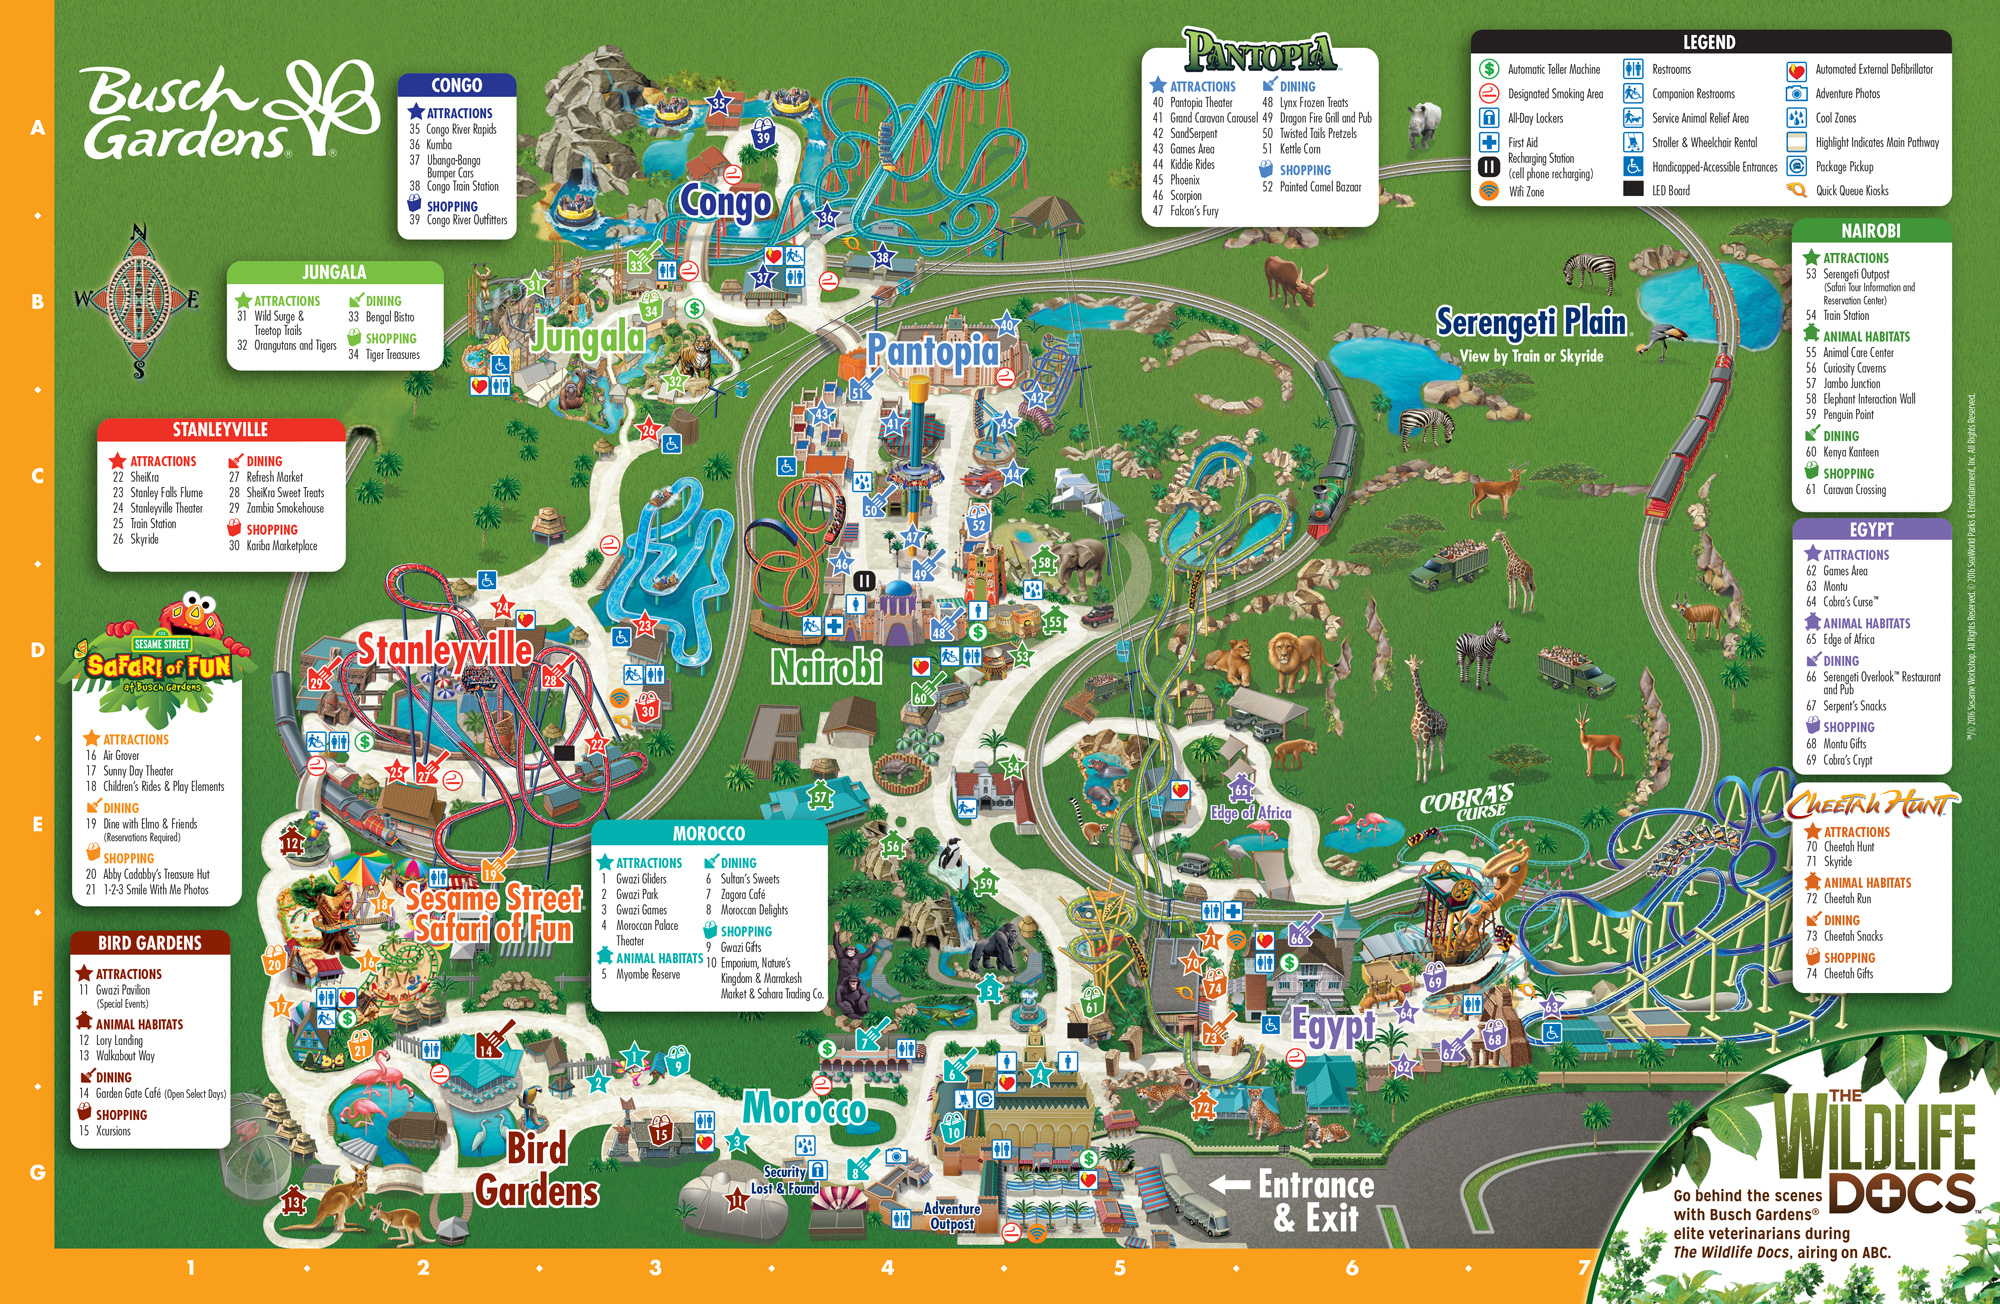 Personable Park Map  Busch Gardens Tampa Bay With Marvelous Explore All Of Busch Gardens Tampa Bay By Viewing Our Park Map Dont With Beautiful Sydney Botanic Gardens Also Garden Maintenance Edinburgh In Addition Fence Garden And Deer Garden Ornament As Well As In The Night Garden Gazebo Additionally Liberty Garden Hose Reel Parts From Seaworldparkscom With   Marvelous Park Map  Busch Gardens Tampa Bay With Beautiful Explore All Of Busch Gardens Tampa Bay By Viewing Our Park Map Dont And Personable Sydney Botanic Gardens Also Garden Maintenance Edinburgh In Addition Fence Garden From Seaworldparkscom